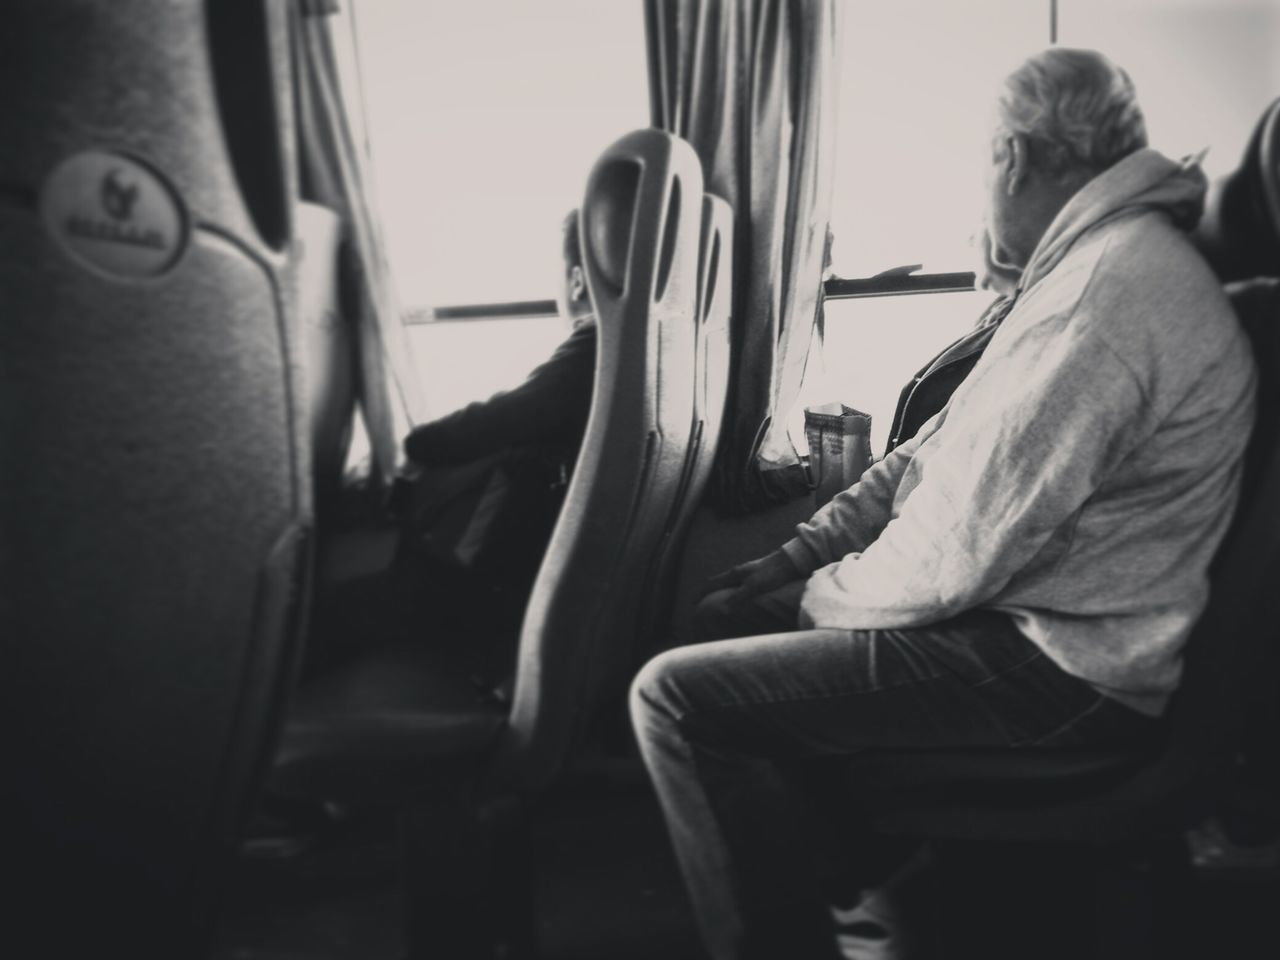 Same ride, same things, it's not like sonething new will appear out of the window, but we still BELIEVEWindow People Sitting Transportation Relaxation Lifestyles Sky Day Simple Alternative Black And White B&w Watch Believe Classic Reflection First Eyeem Photo